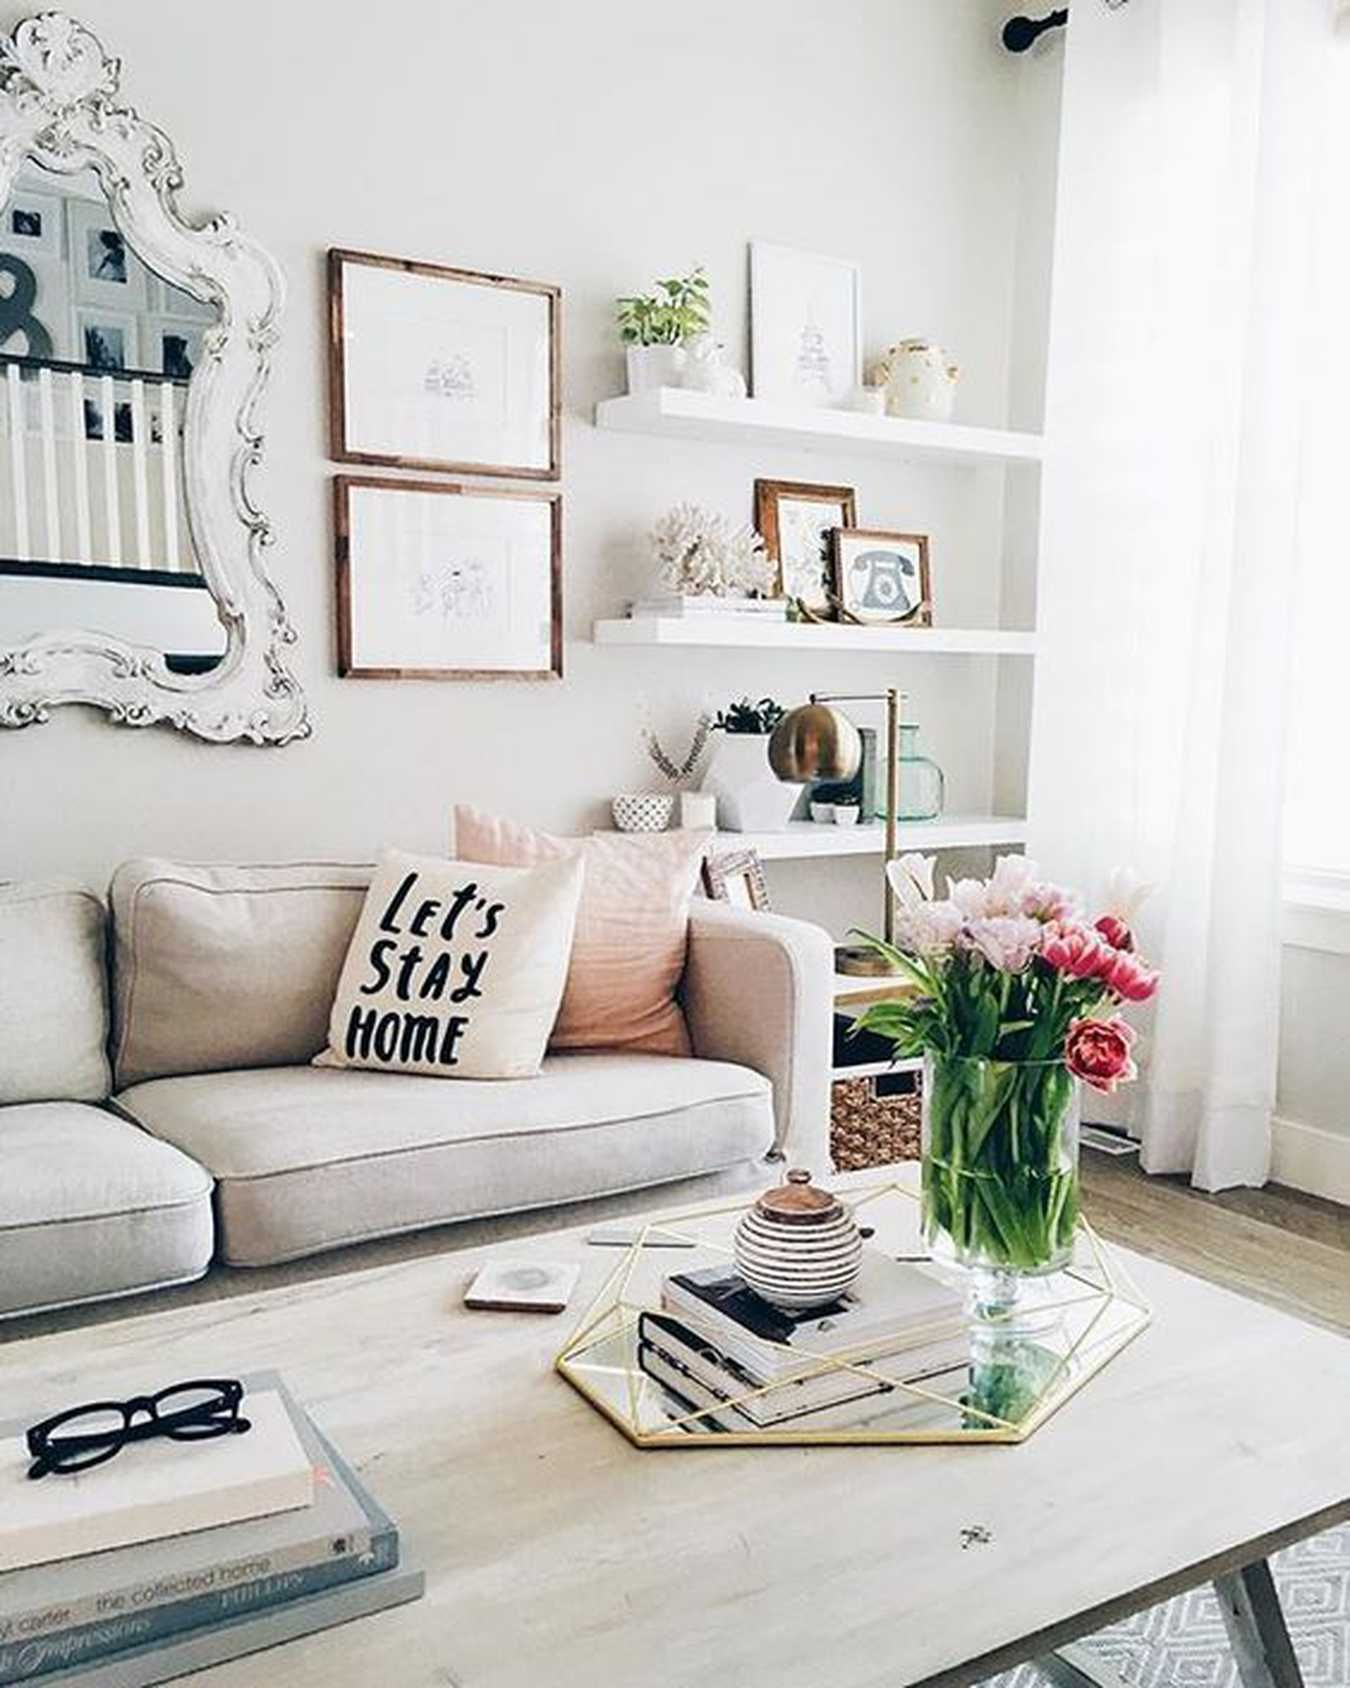 images?q=tbn:ANd9GcQh_l3eQ5xwiPy07kGEXjmjgmBKBRB7H2mRxCGhv1tFWg5c_mWT Best Of Home Decor Style Quizzes @house2homegoods.net